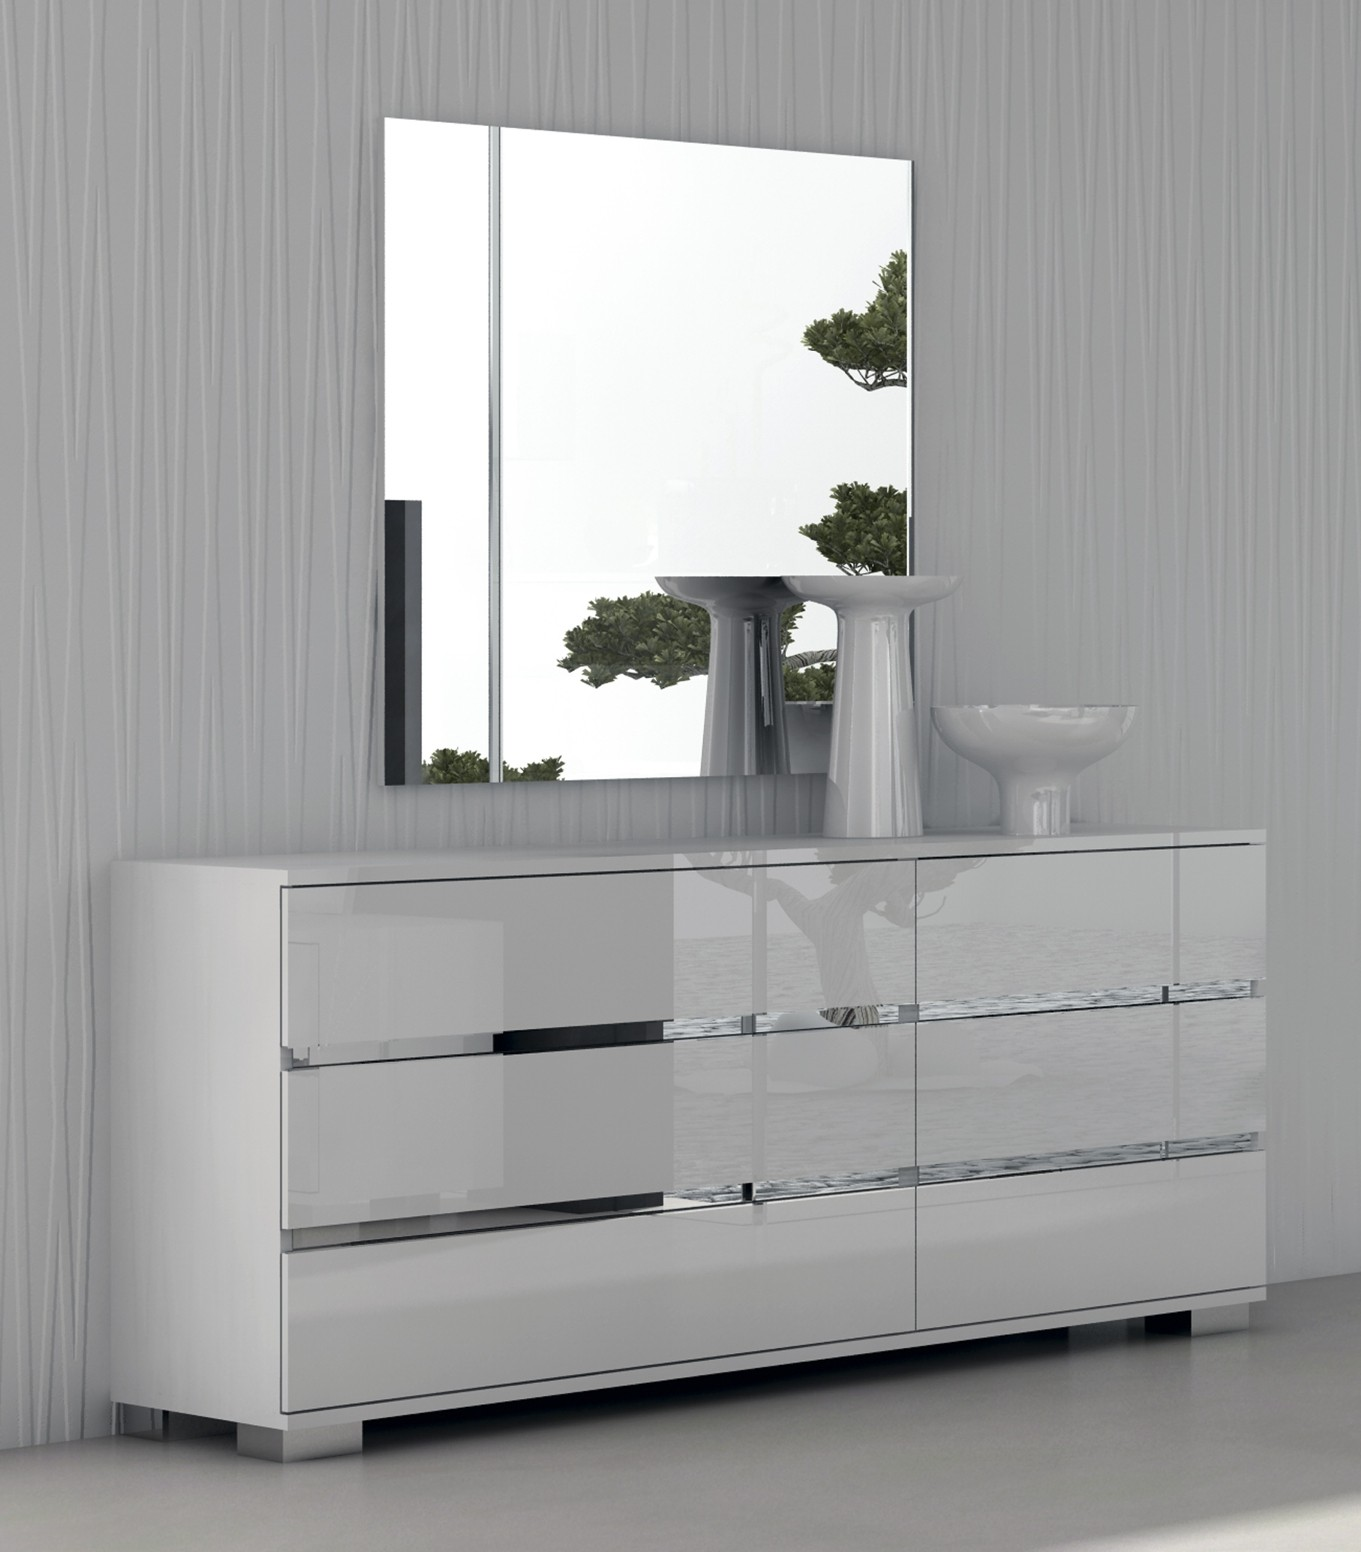 white-chest-of-drawers-bedroom-set-on-interior-decor-home-ideas-with-white-chest-of-drawers-bedroom-set